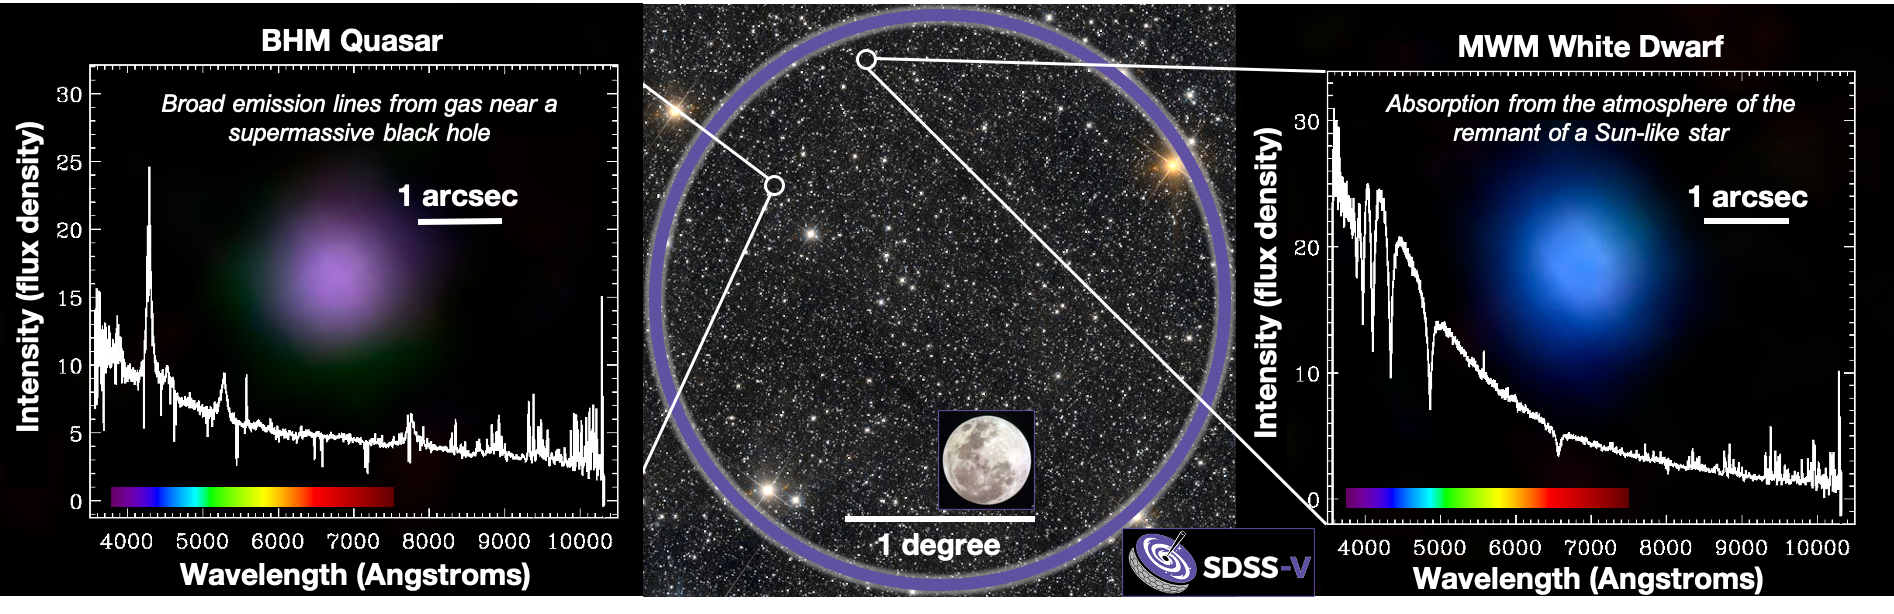 CENTRAL IMAGE: a single field of SDSS-V observations. Purple circle indicates the telescope's field-of-view on the sky, with the full Moon shown as a size comparison.  LEFT: optical-light spectrum of a quasar. RIGHT: image and spectrum of a white dwarf. CREDITS: Hector Ibarra Medel, Jon Trump, Yue Shen, Gail Zasowski, and the SDSS-V Collaboration. Central background image: unWISE / NASA/JPL-Caltech / D.Lang (Perimeter Institute).